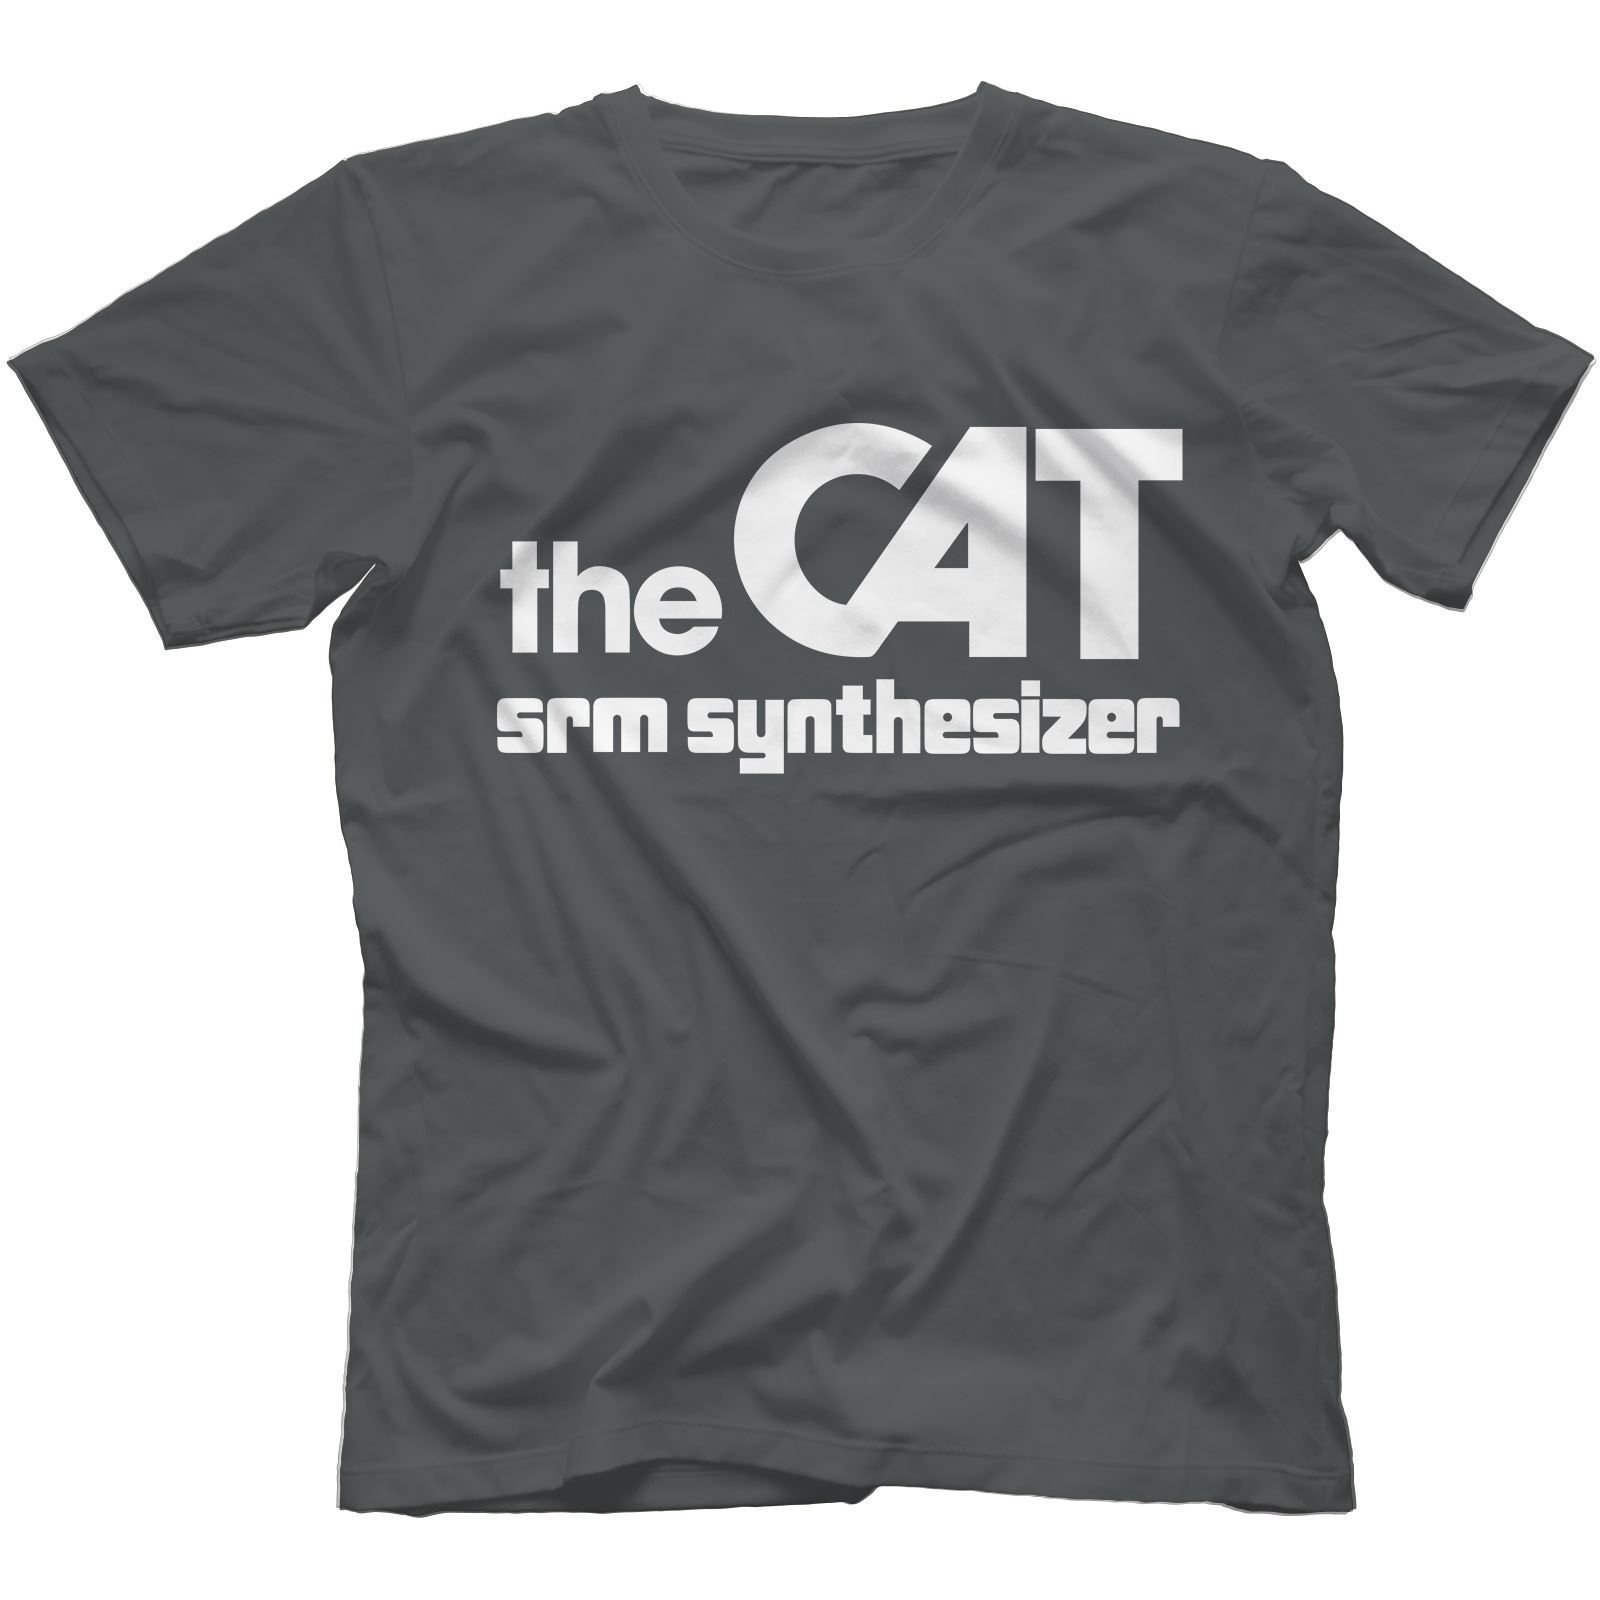 The-Cat-SRM-Synthesiser-T-Shirt-100-Cotton-Retro-Analog-Arp-Odyssey Indexbild 13